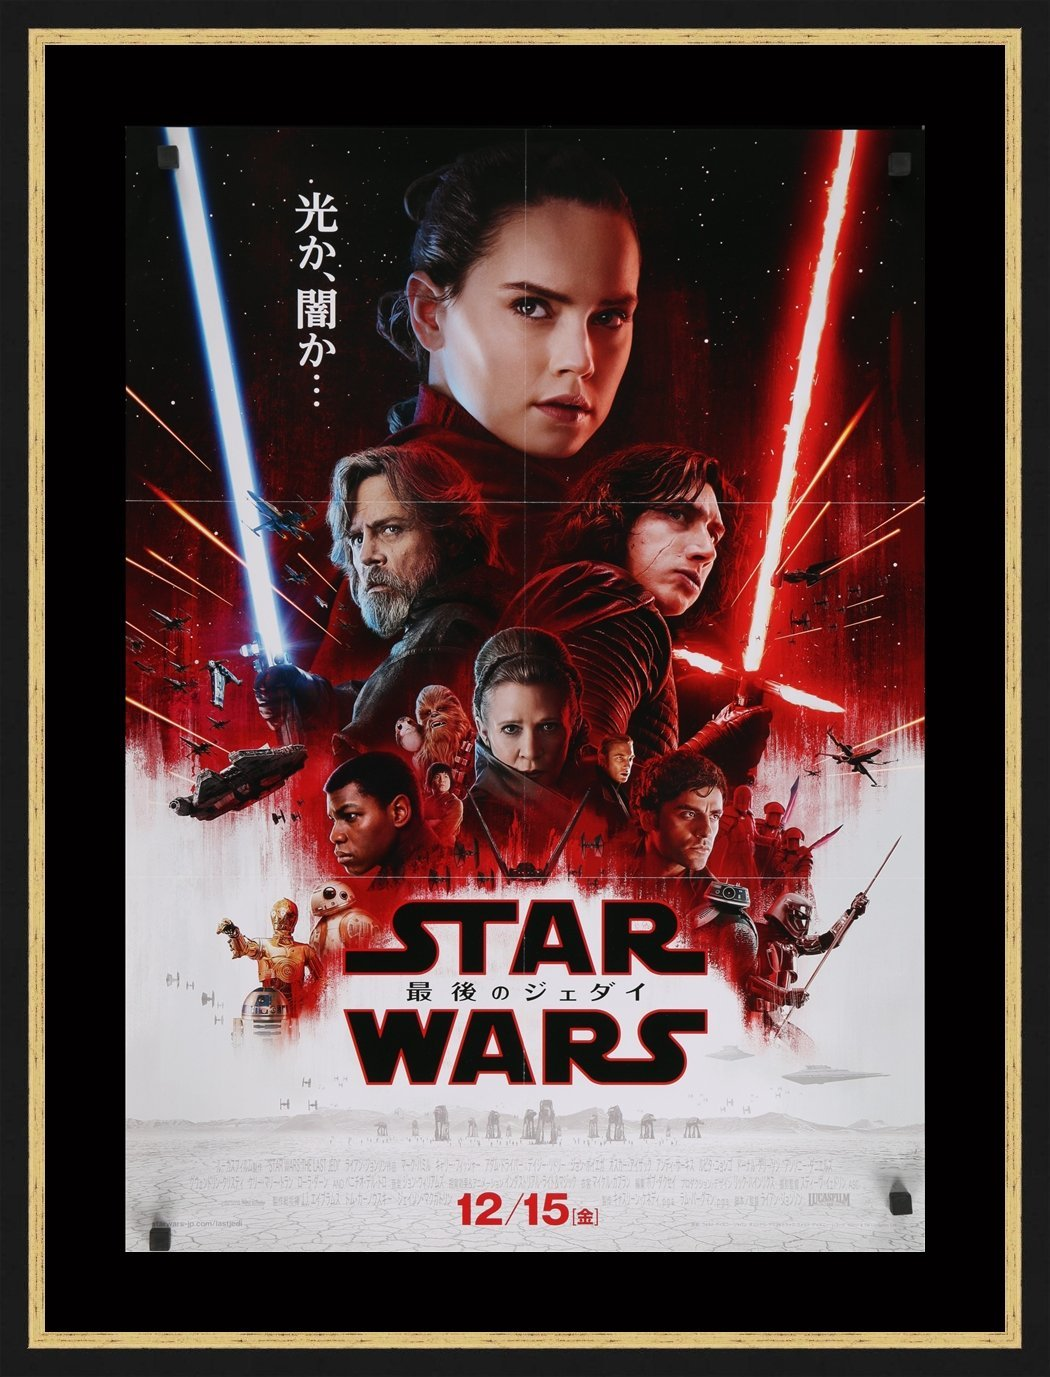 An Original Japanese B2 Movie Poster for the film, Star Wars, The Last Jedi.